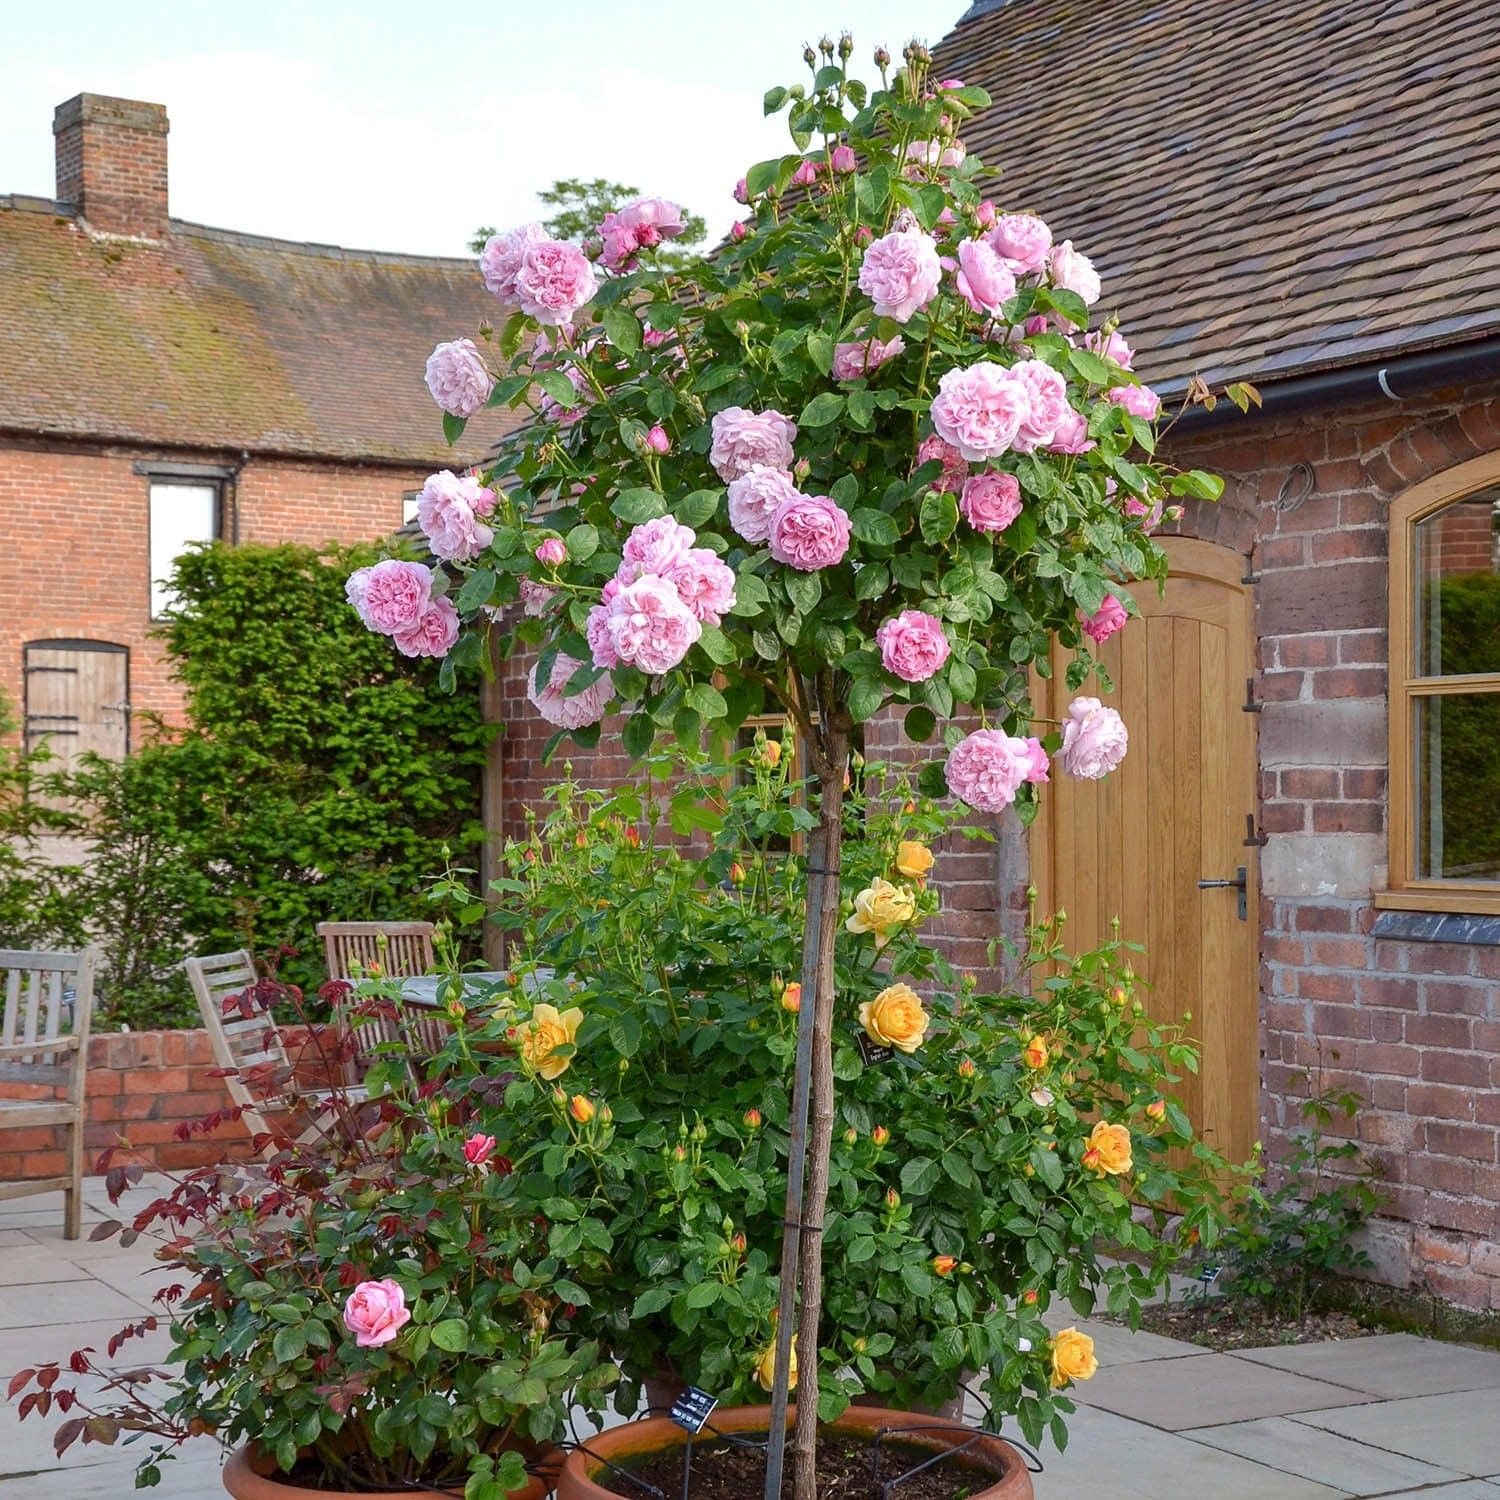 Mary Rose Repeat Flowering Popular Searches Rose Trees Rose Care Rose Hedge